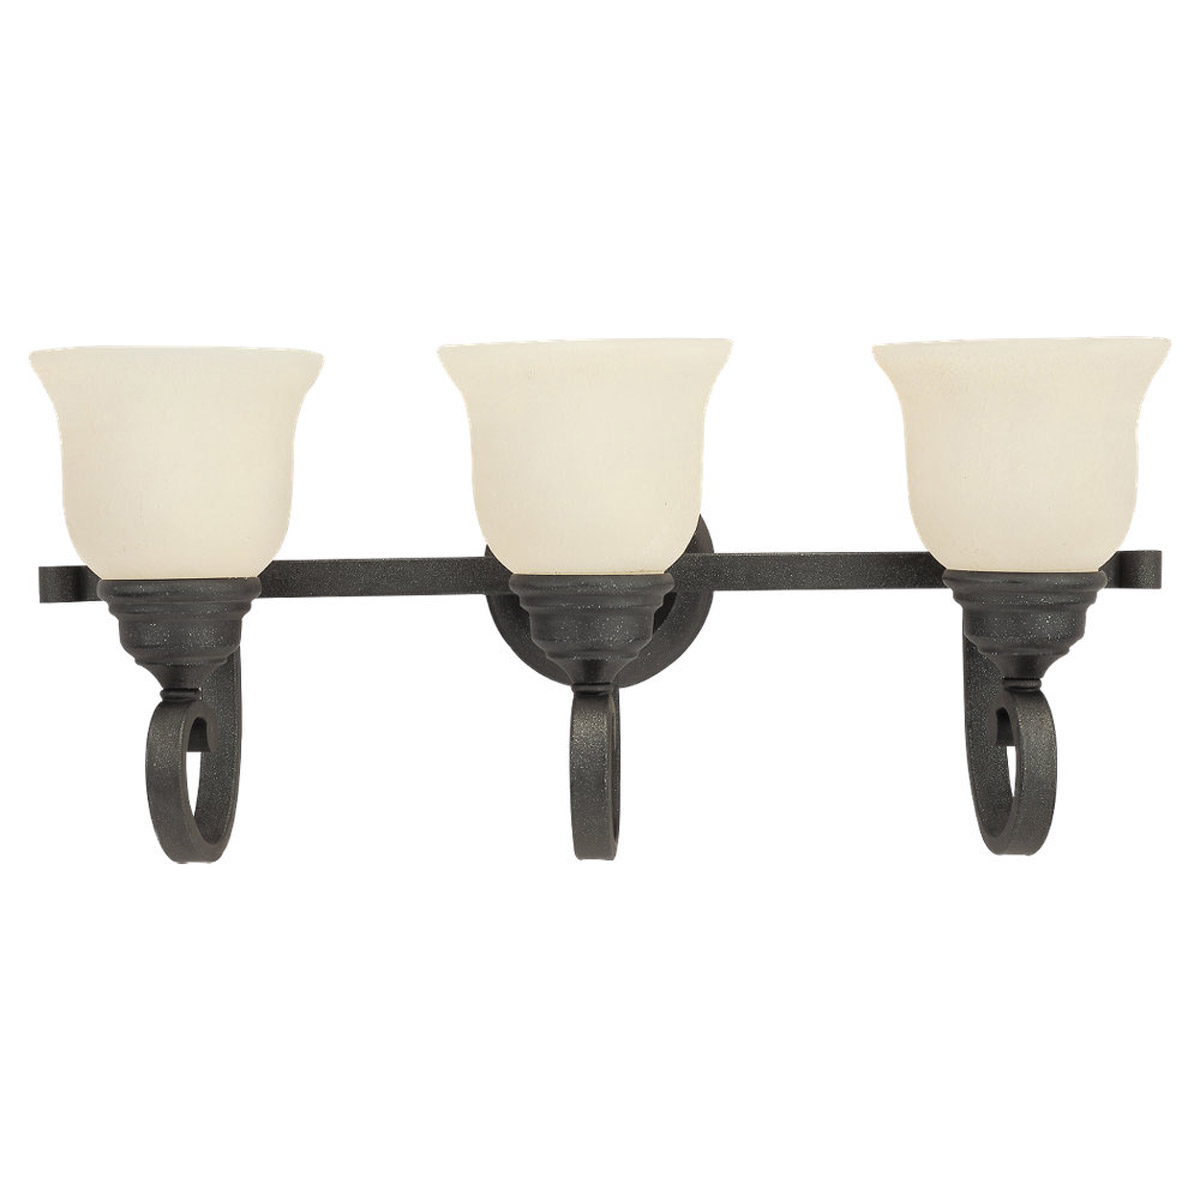 Sea Gull Lighting Serenity 3 Light Bath Vanity in Weathered Iron 49060BLE-07